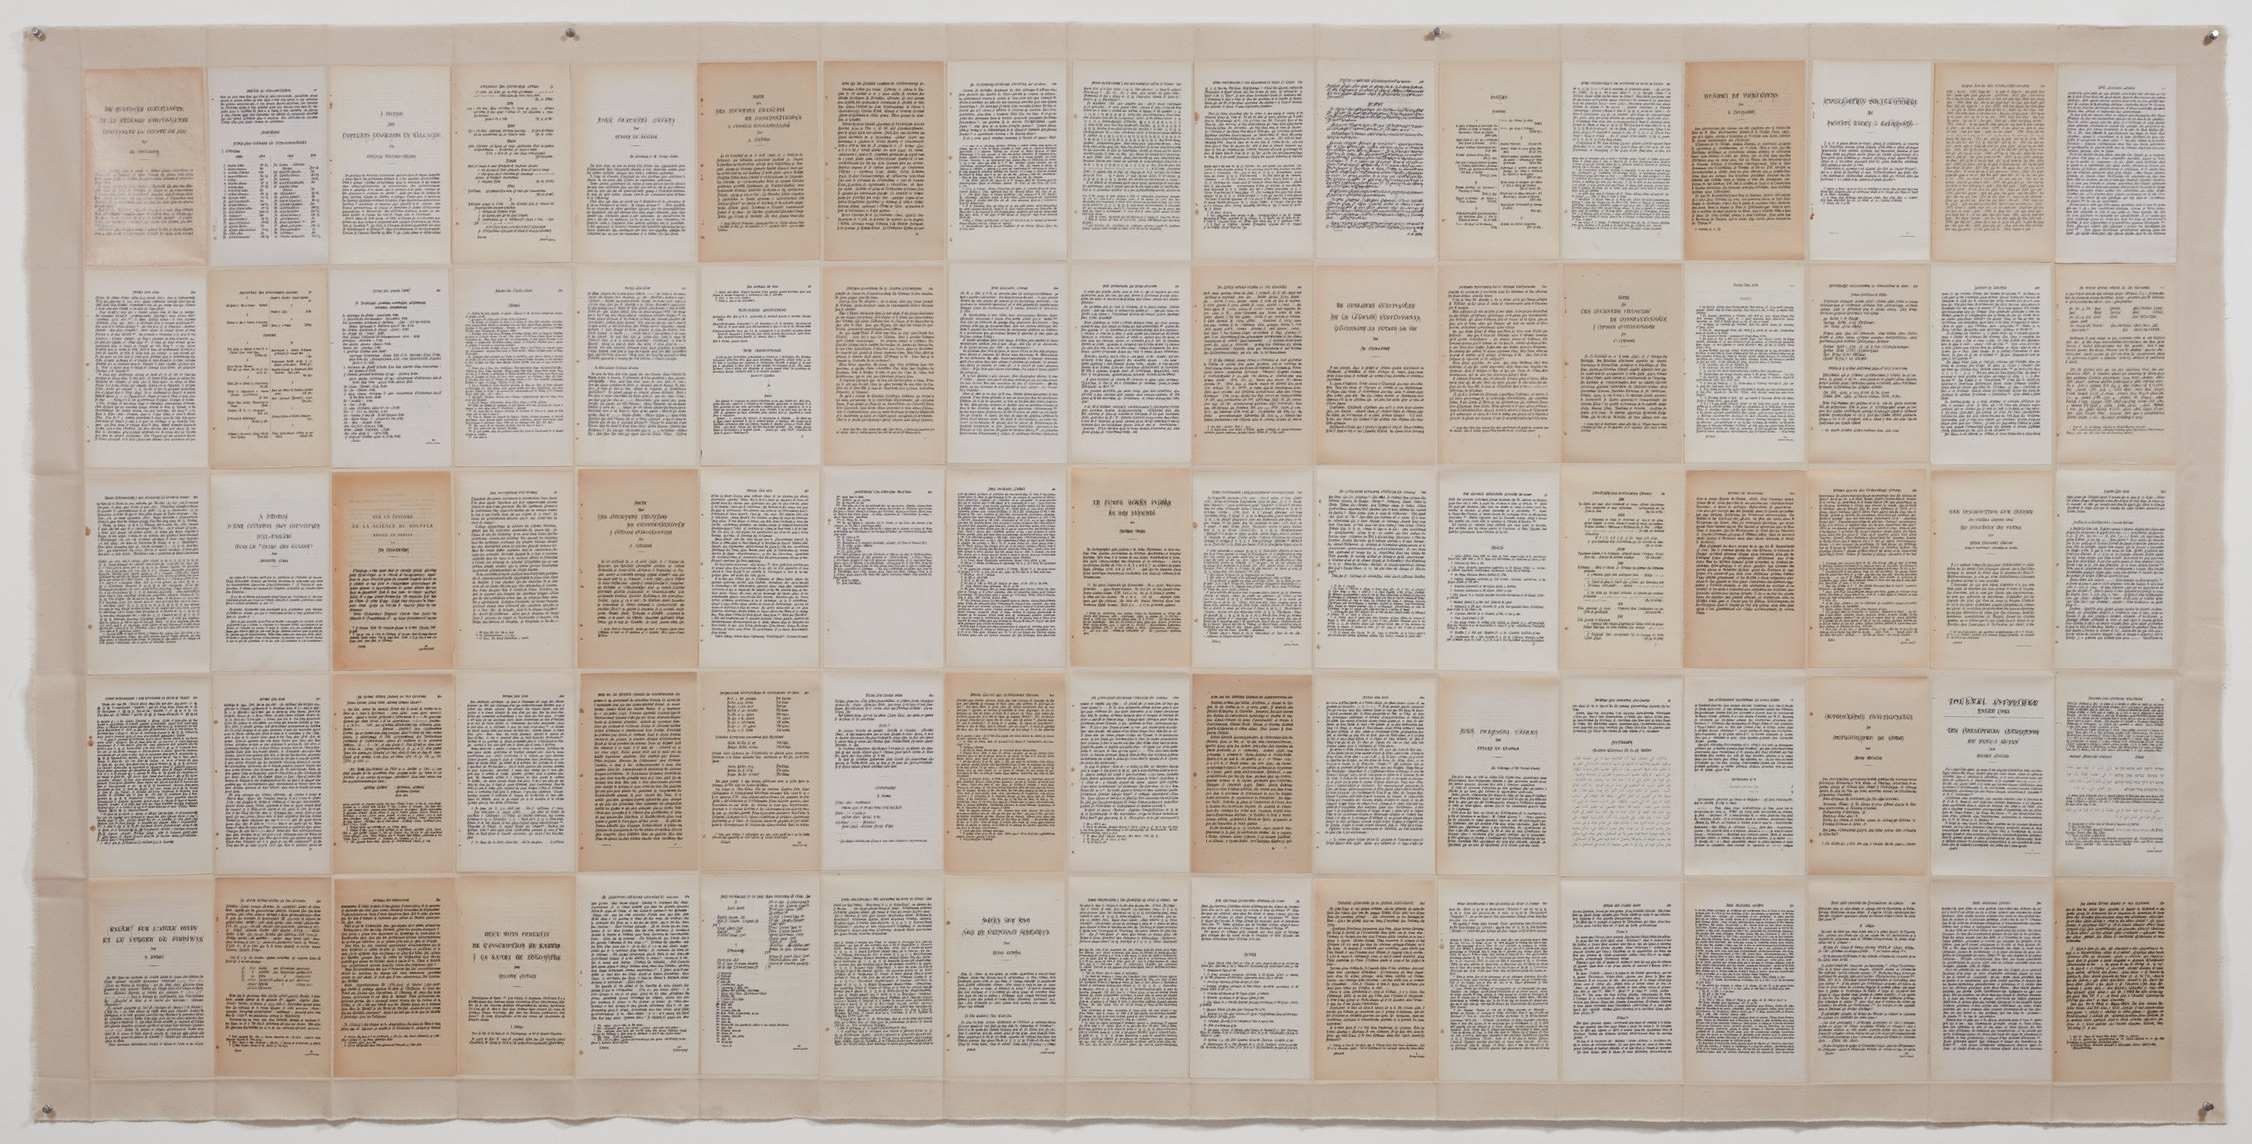 Overwriting 3. 85 printed pages and ink on coton canvas, 47 x 95in (120 x 242cm)